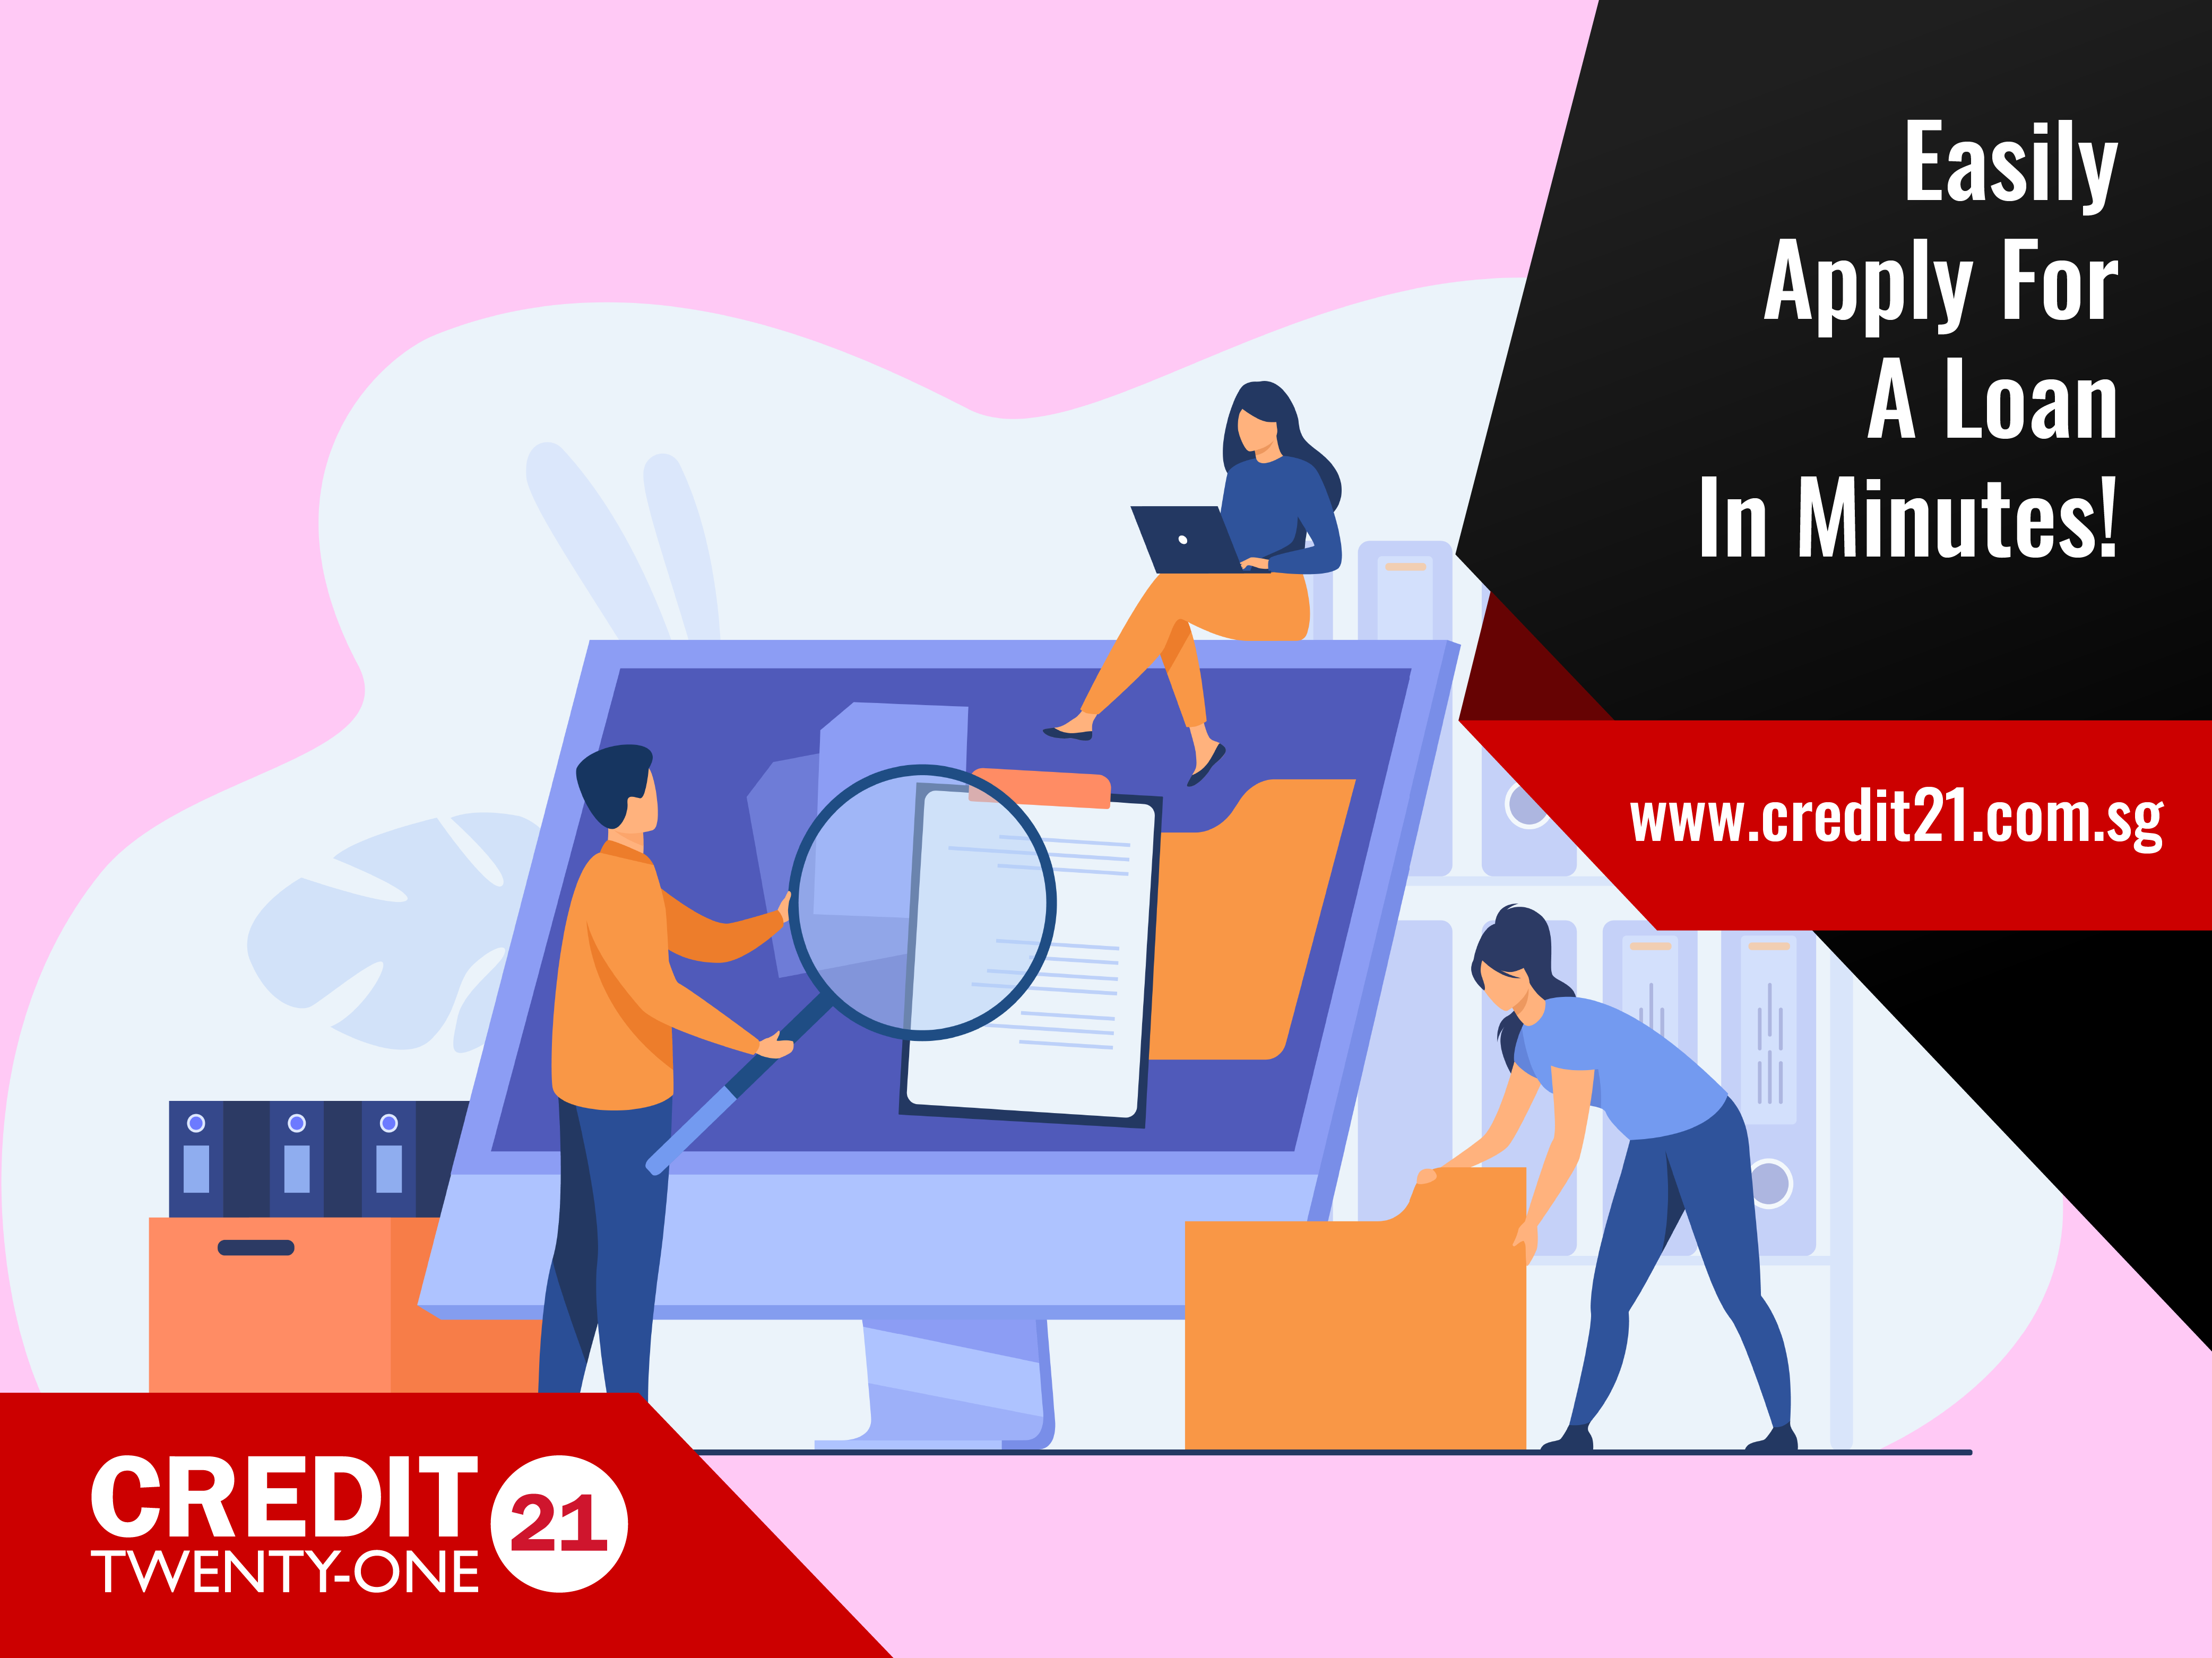 Easily Apply For A Loan With Credit 21-01